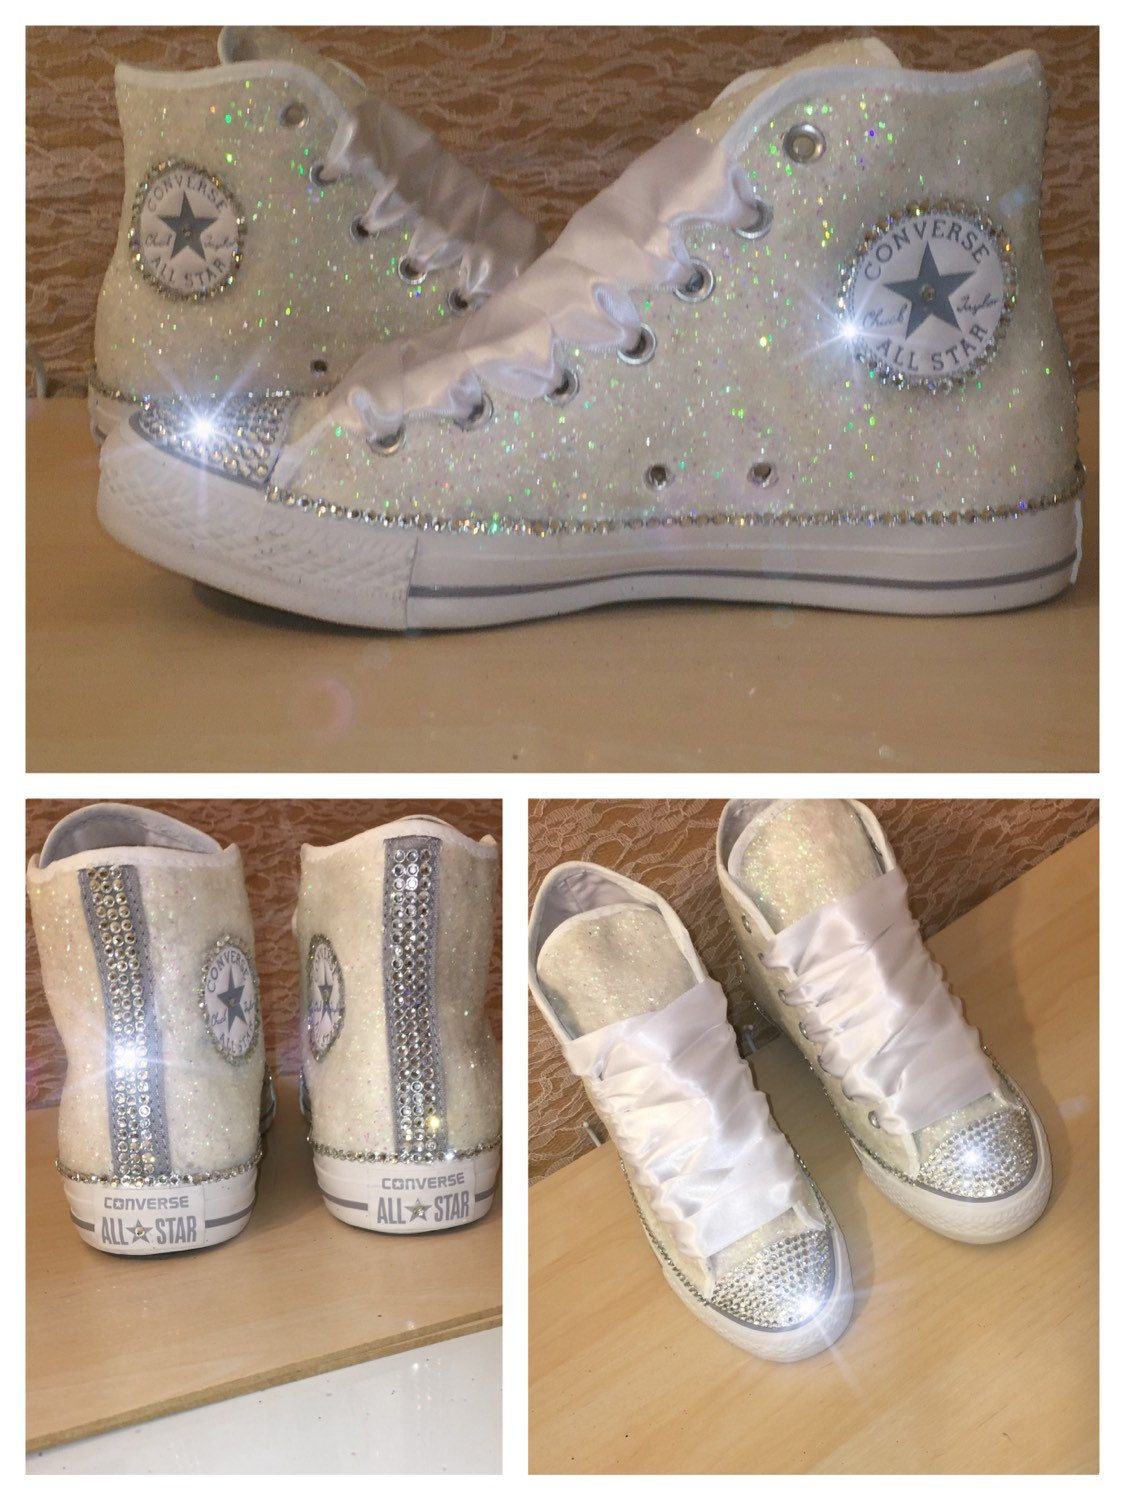 446562c7cae9 ... PINNED10 Women s WHITE or IVORY sparkly Glitter crystals ribbon lace  high top or wedge heels CONVERSE all stars tennis shoes wedding bride  sneakers